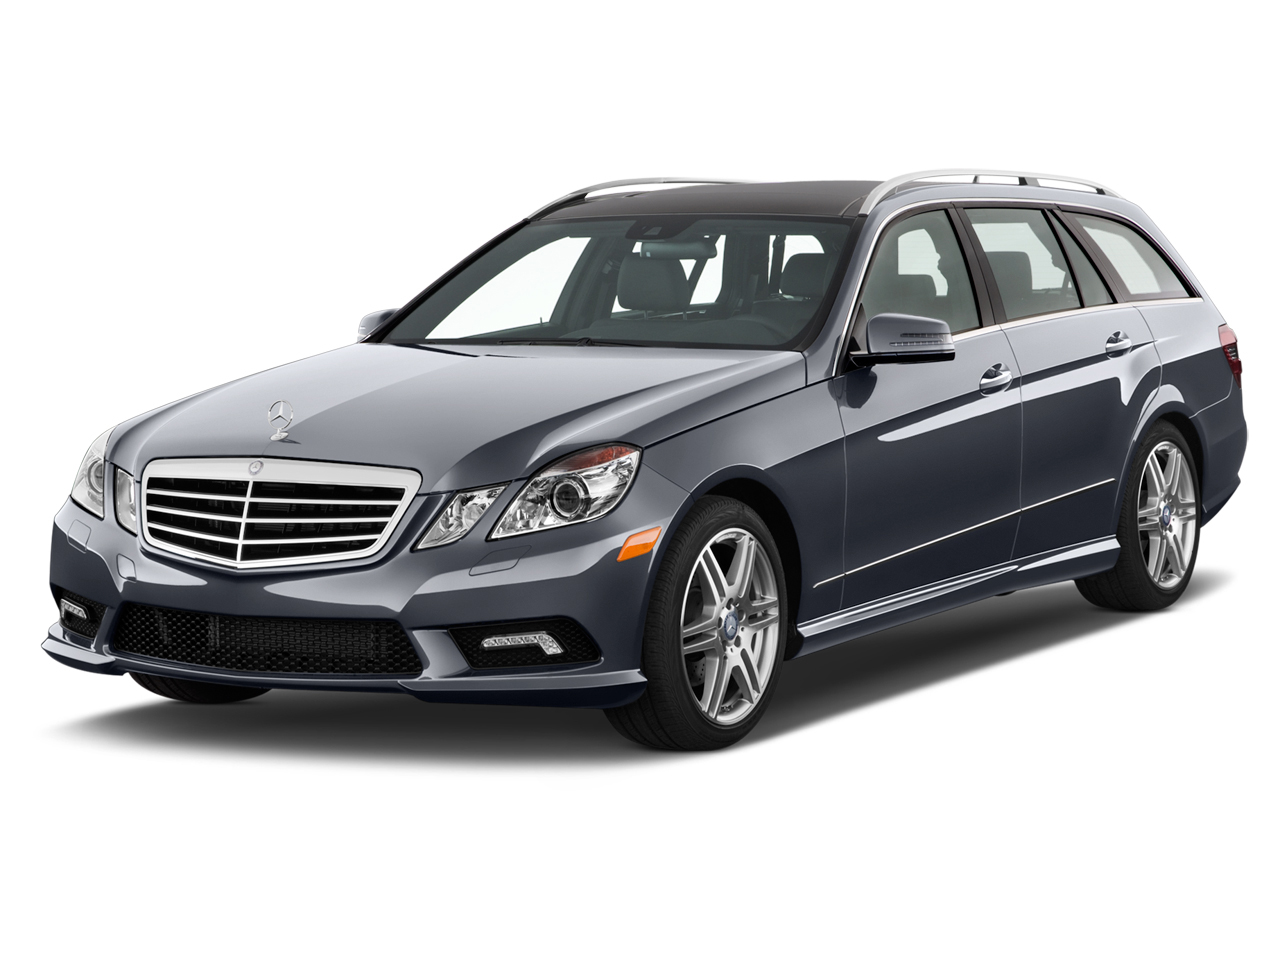 2012 mercedes benz e class review ratings specs prices for Mercedes benz e350 horsepower